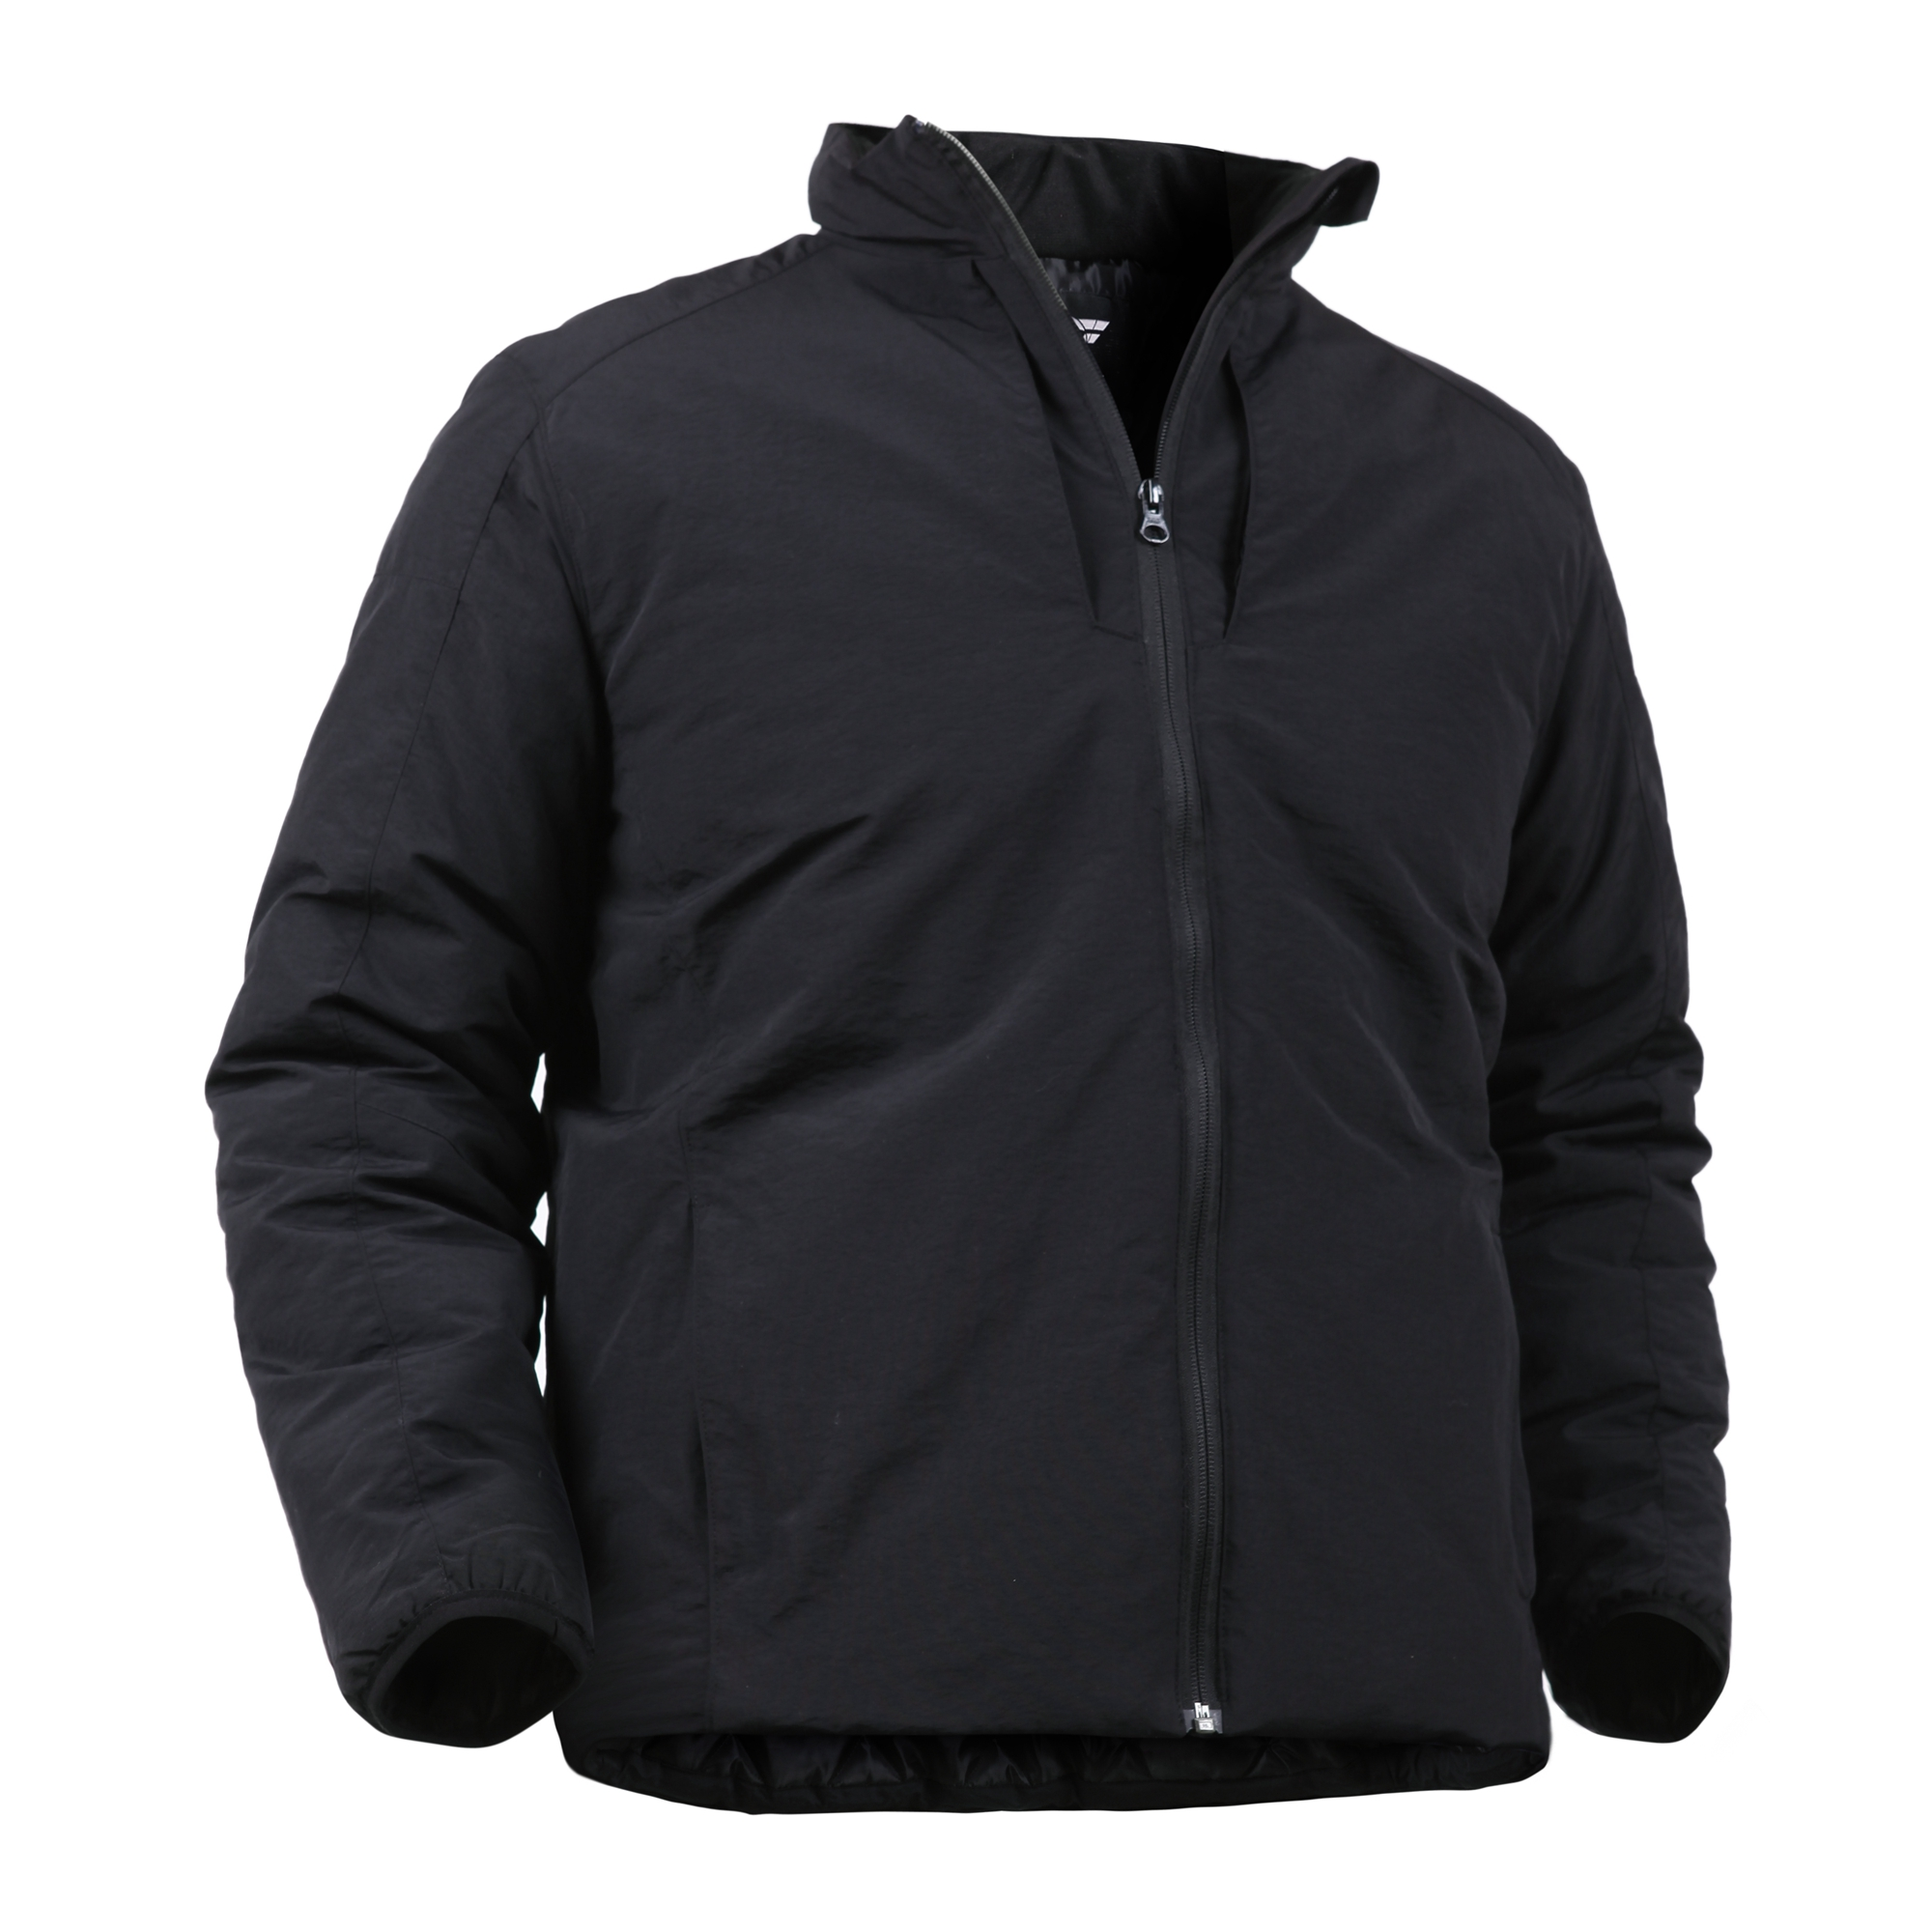 Men's Winter <strong>Military</strong> Tactical <strong>Jacket</strong> Thick Coat Liner Parka Army Wadded <strong>Jacket</strong> Lightweight Warm Windbreaker